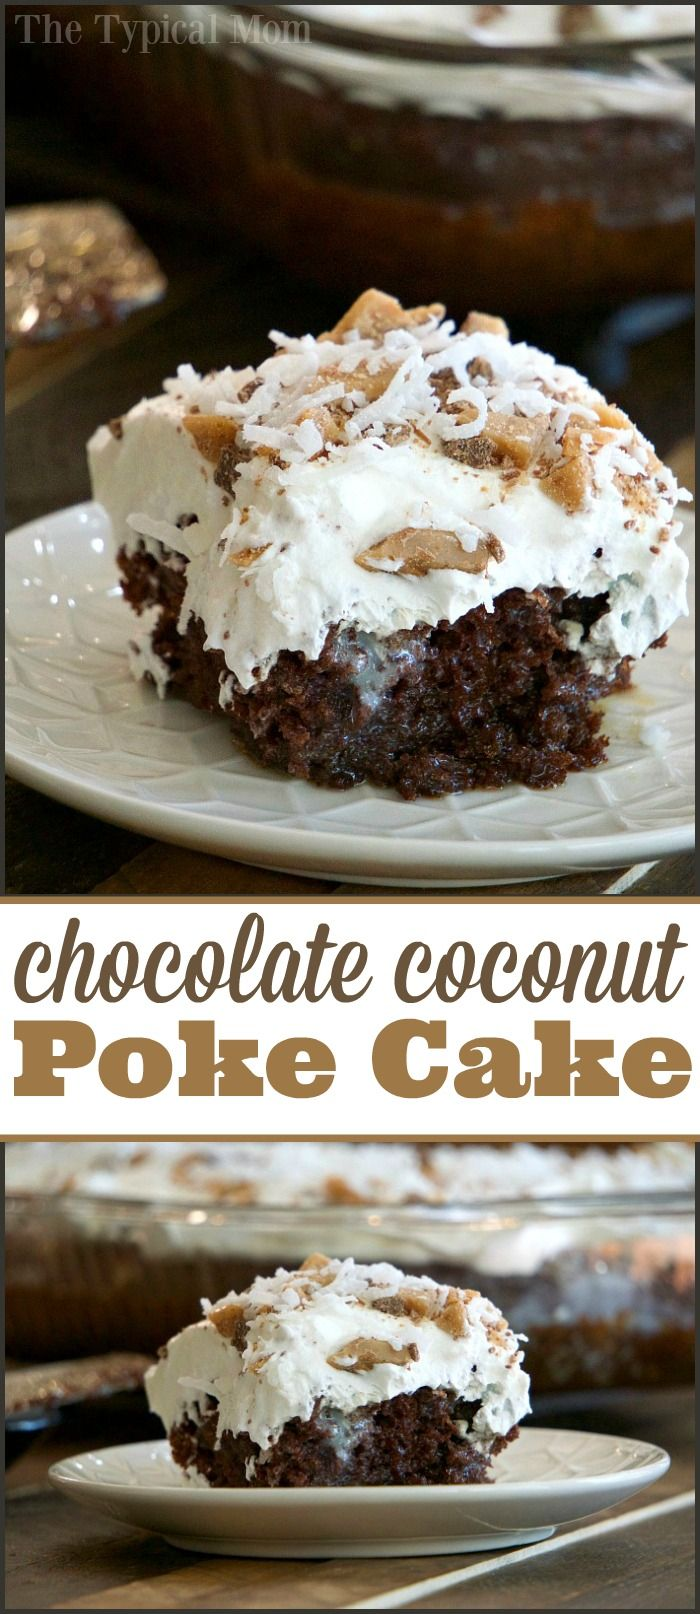 Chocolate Coconut Poke Cake Recipe